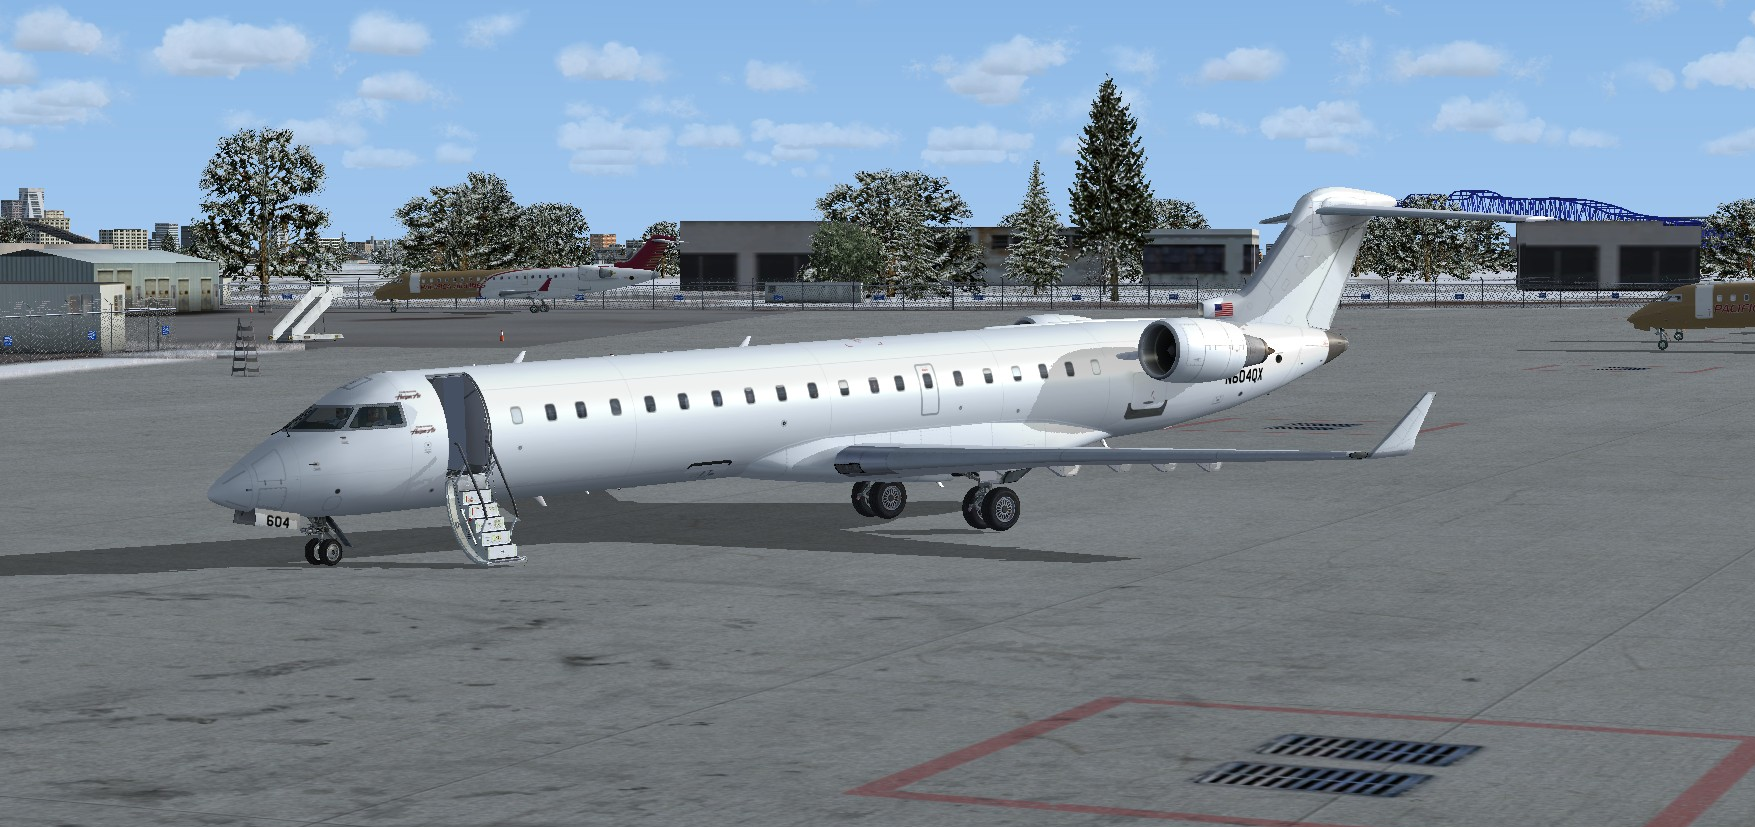 FSX Bombardier CRJ-701 Frontier JetExpress 'Untitled' package